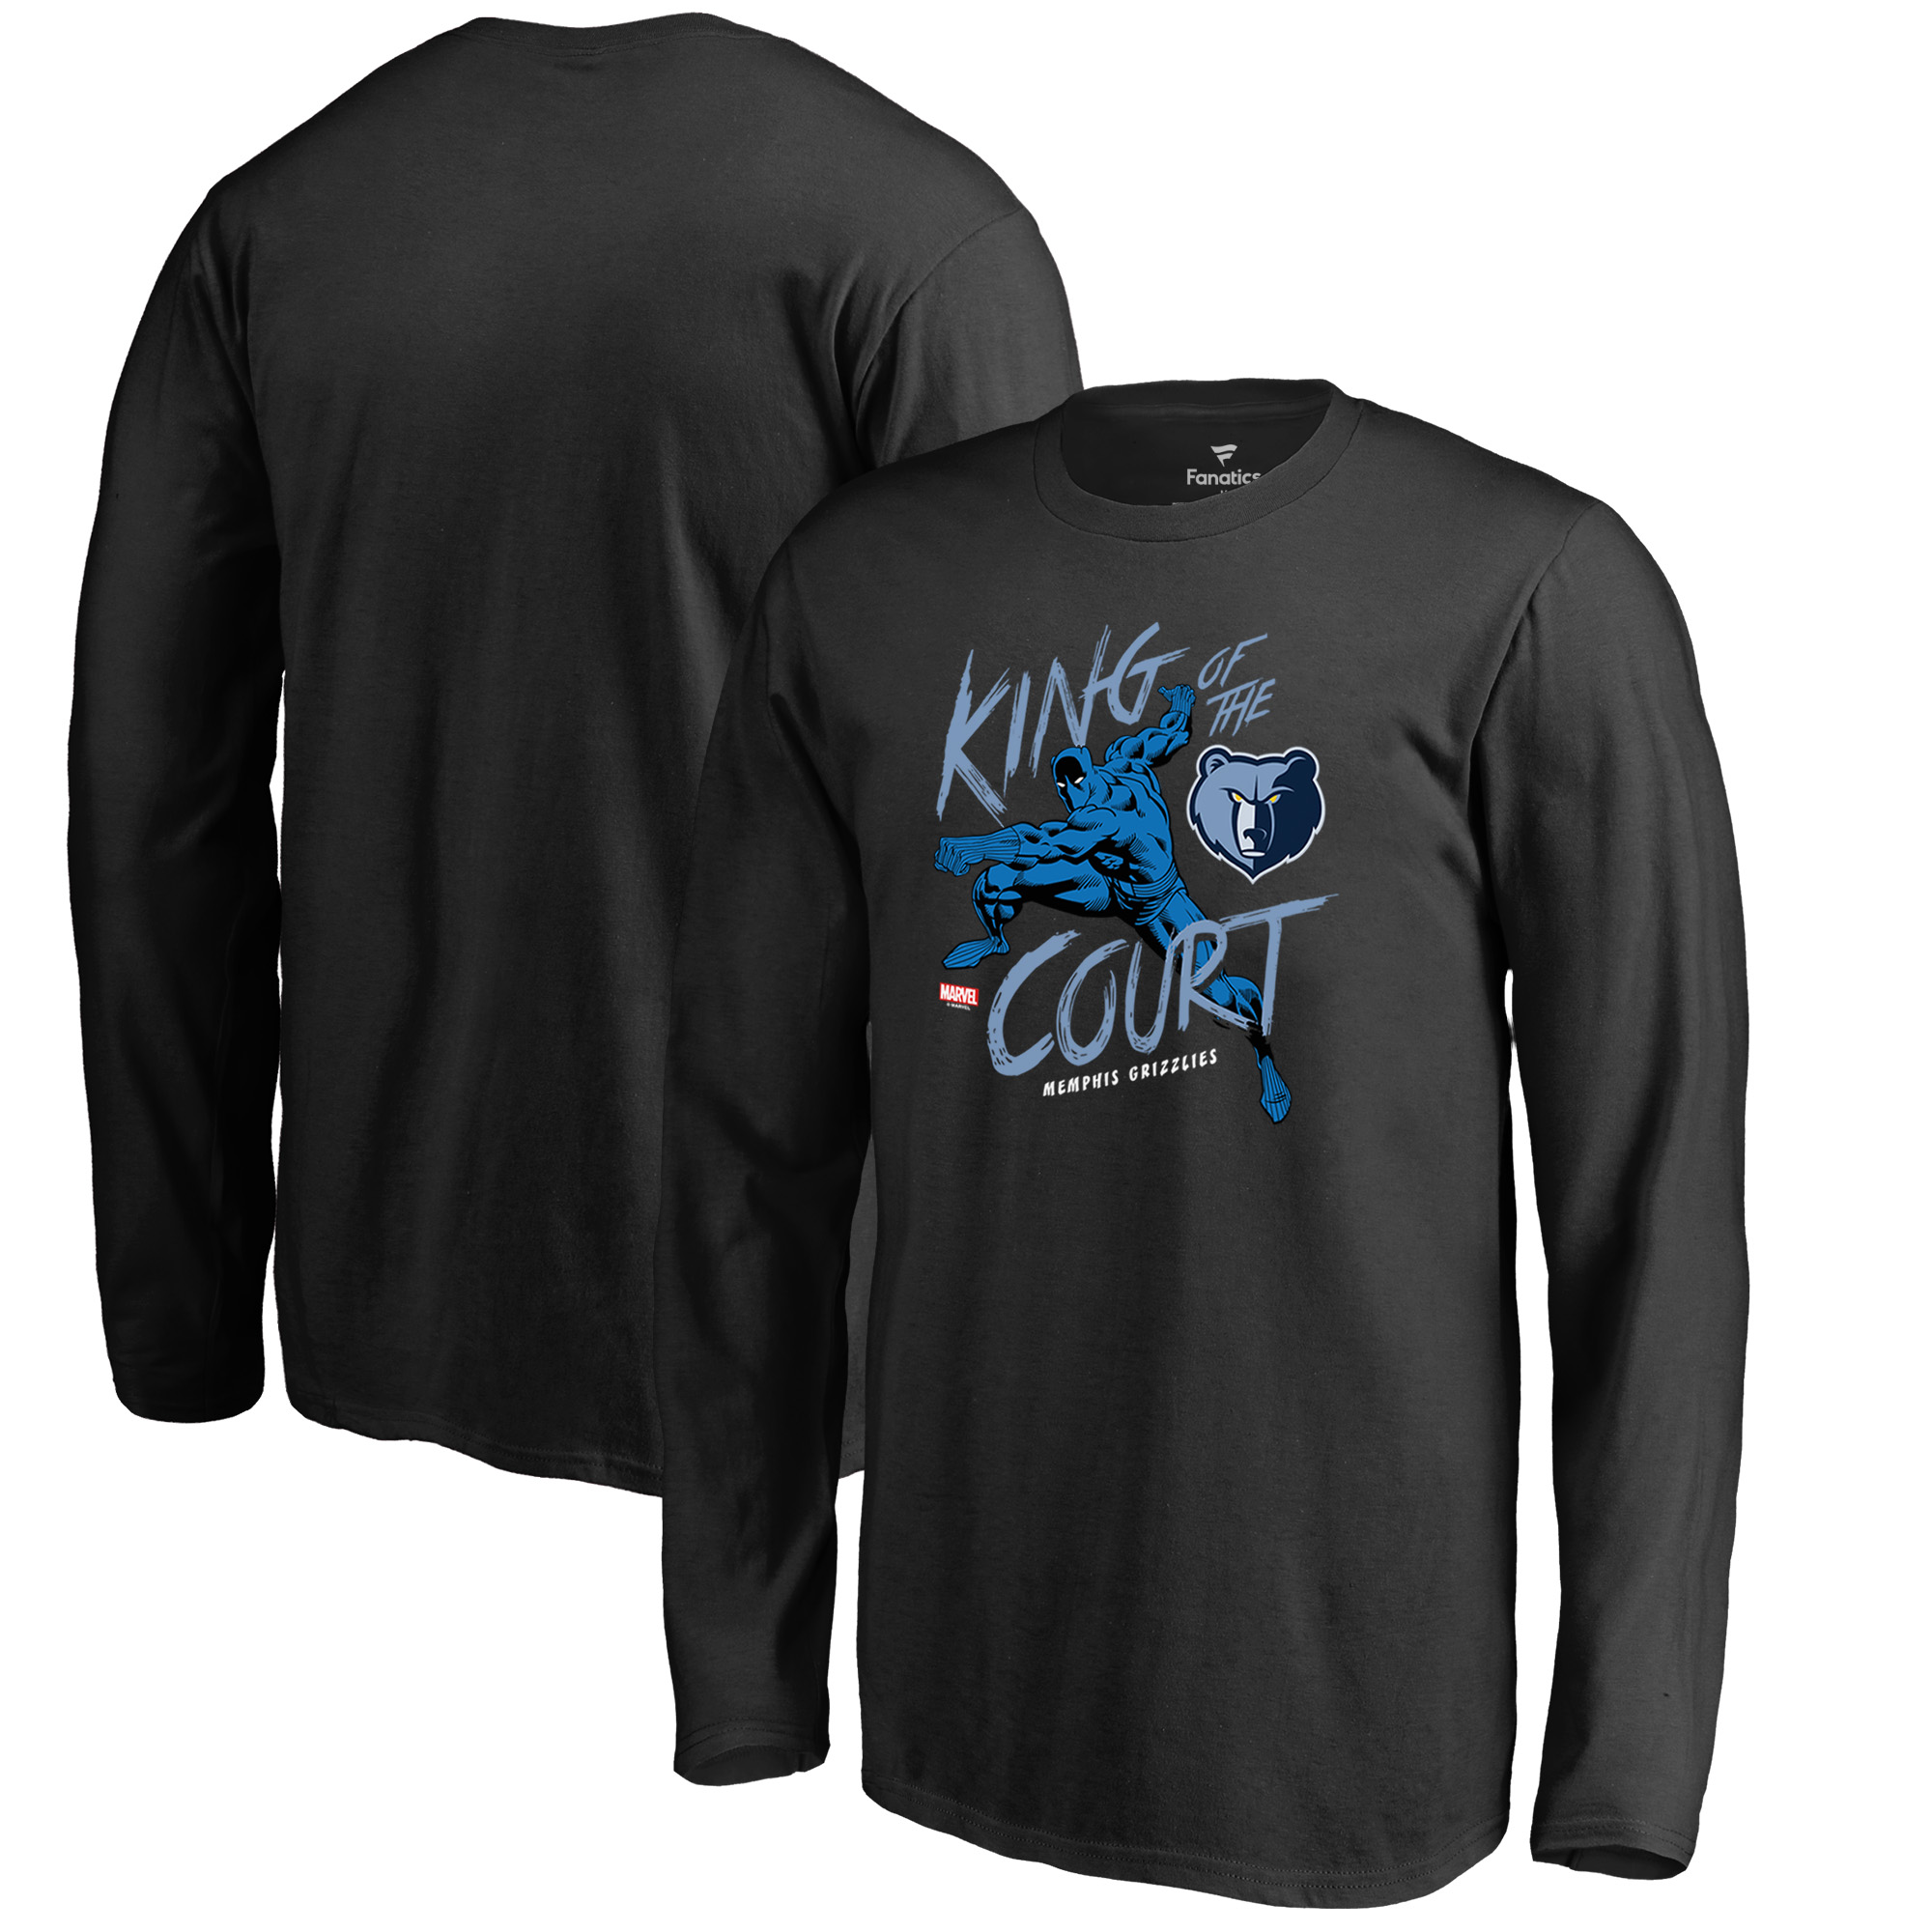 Memphis Grizzlies Fanatics Branded Youth Marvel Black Panther King of the Court Long Sleeve T-Shirt - Black